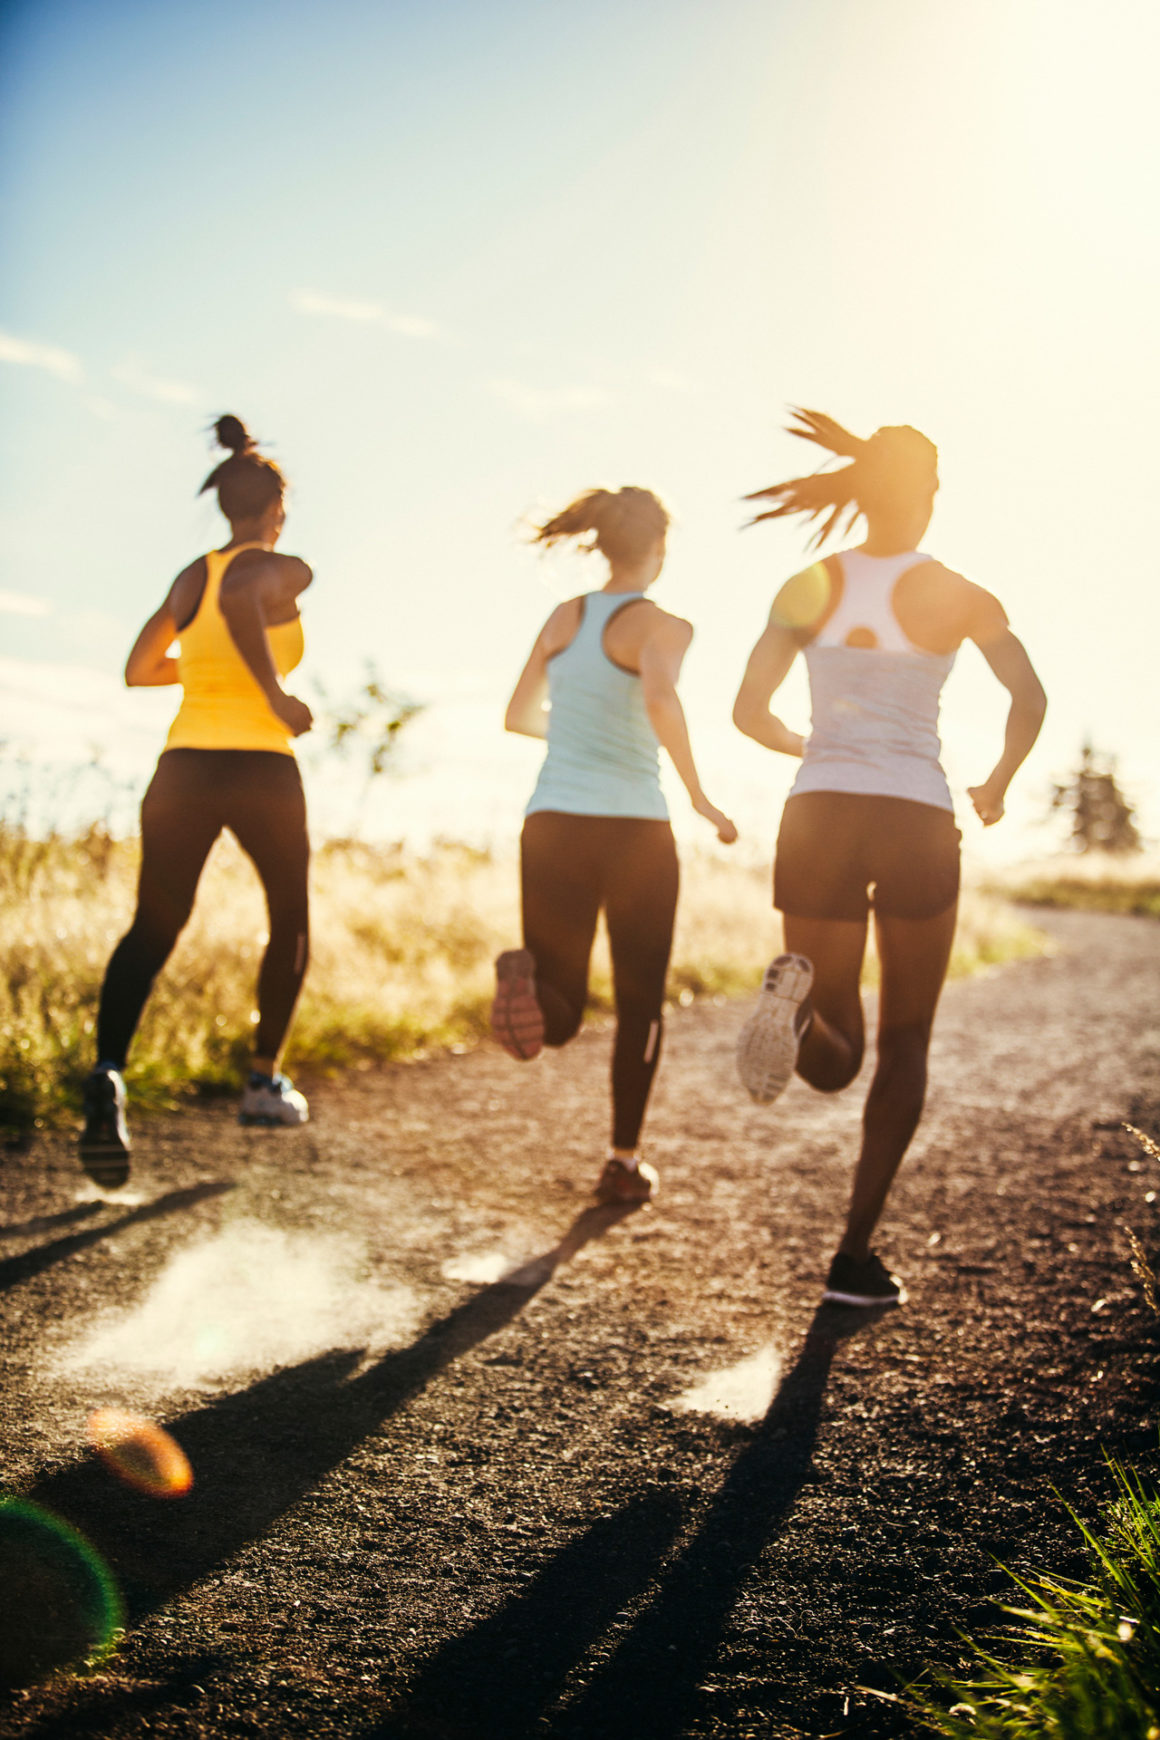 A daily half hour's exercise could prevent 1 in 12 early deaths, study shows